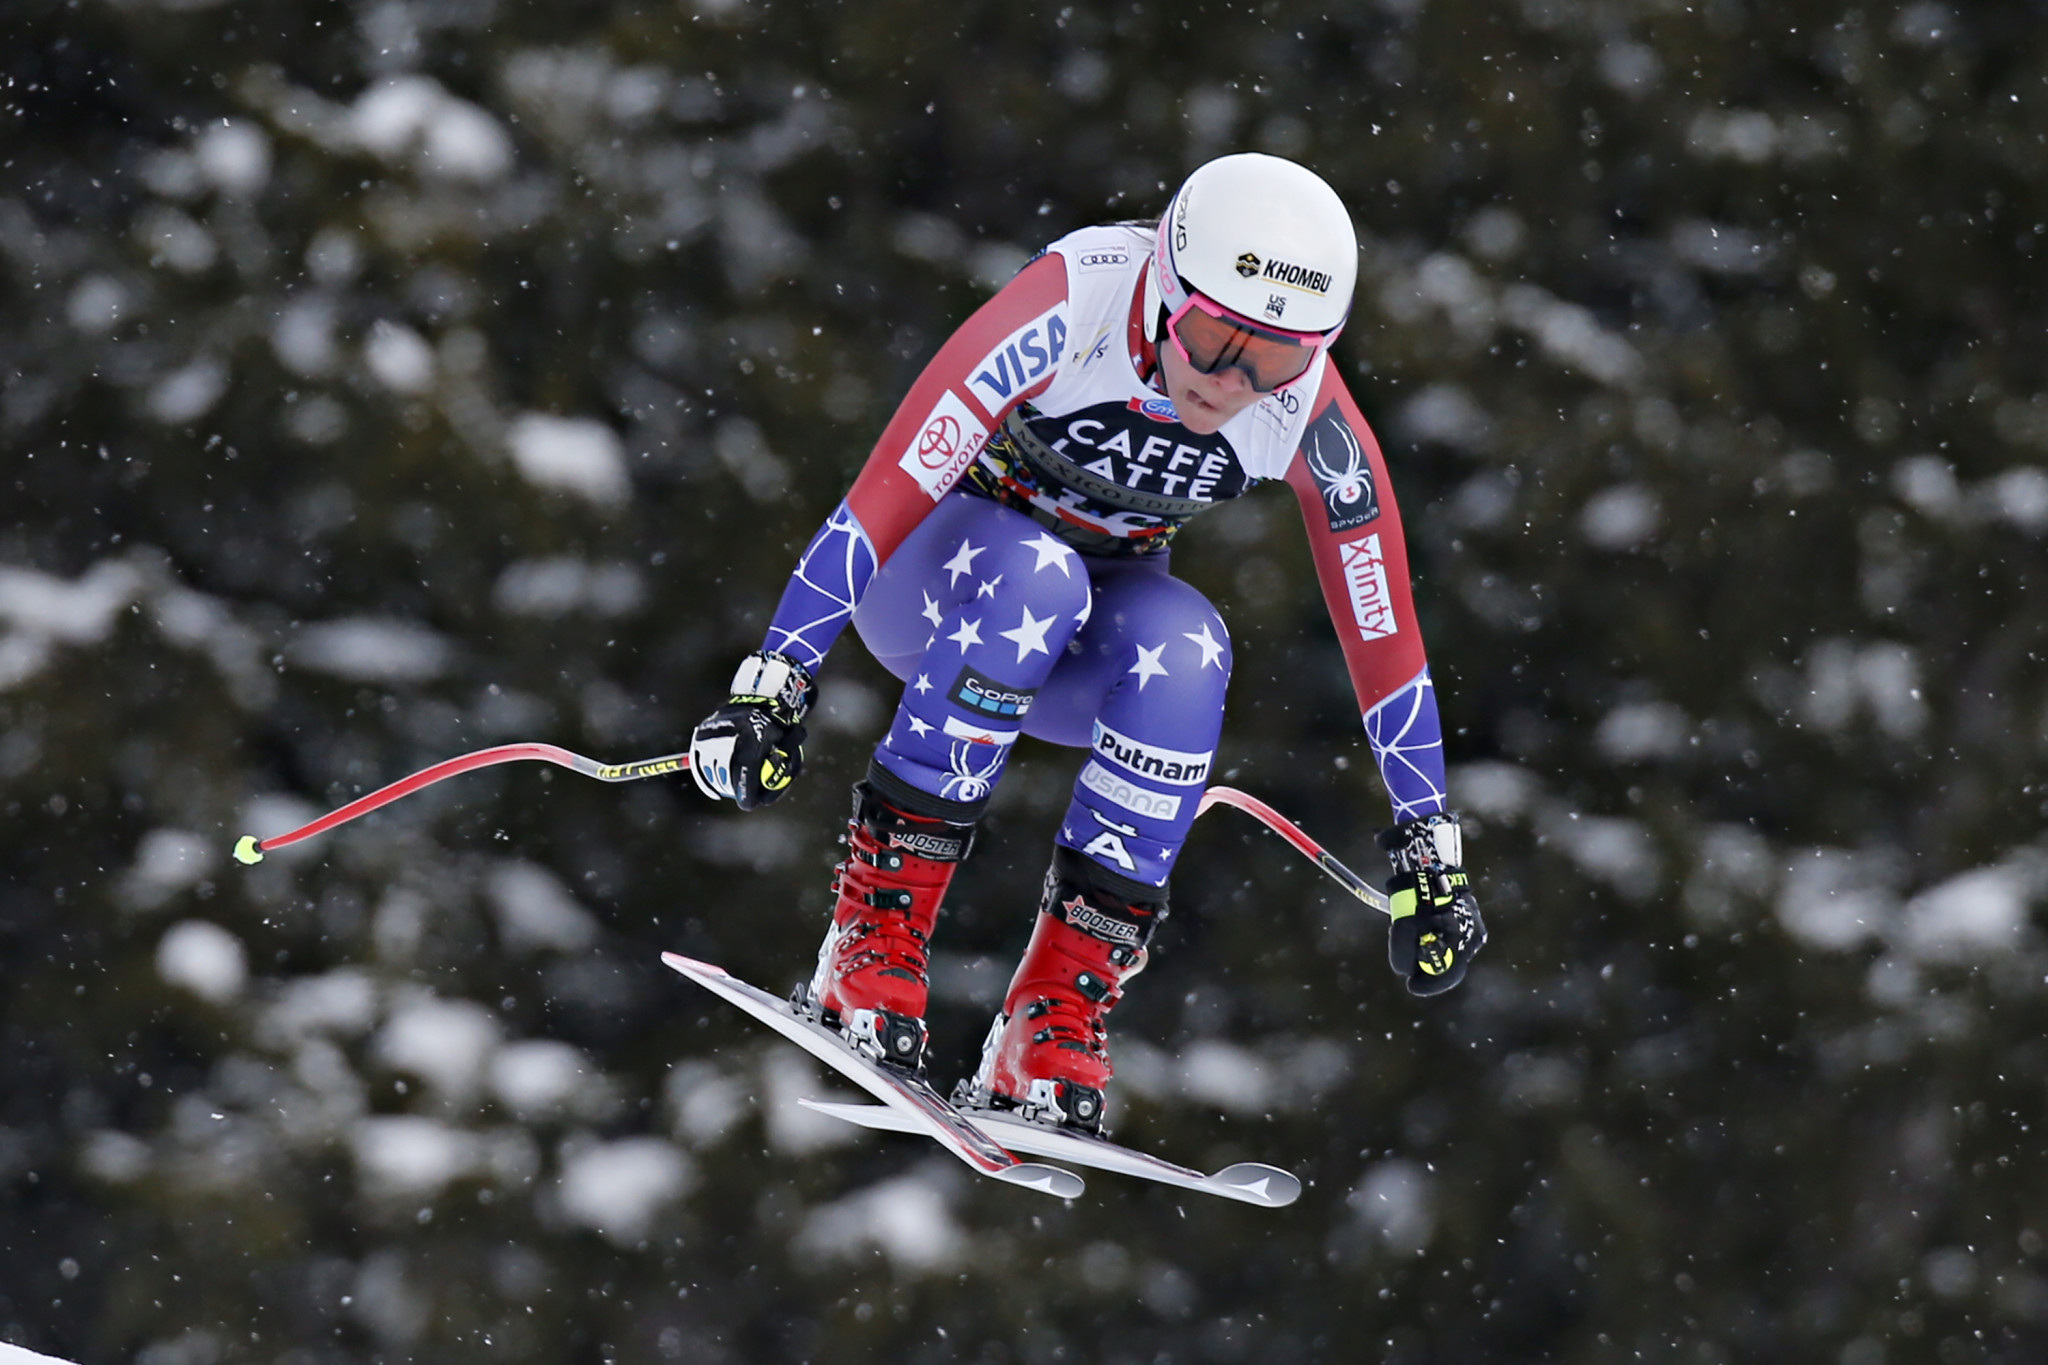 US downhill skier Johnson suffers serious knee injury during training camp in Chile